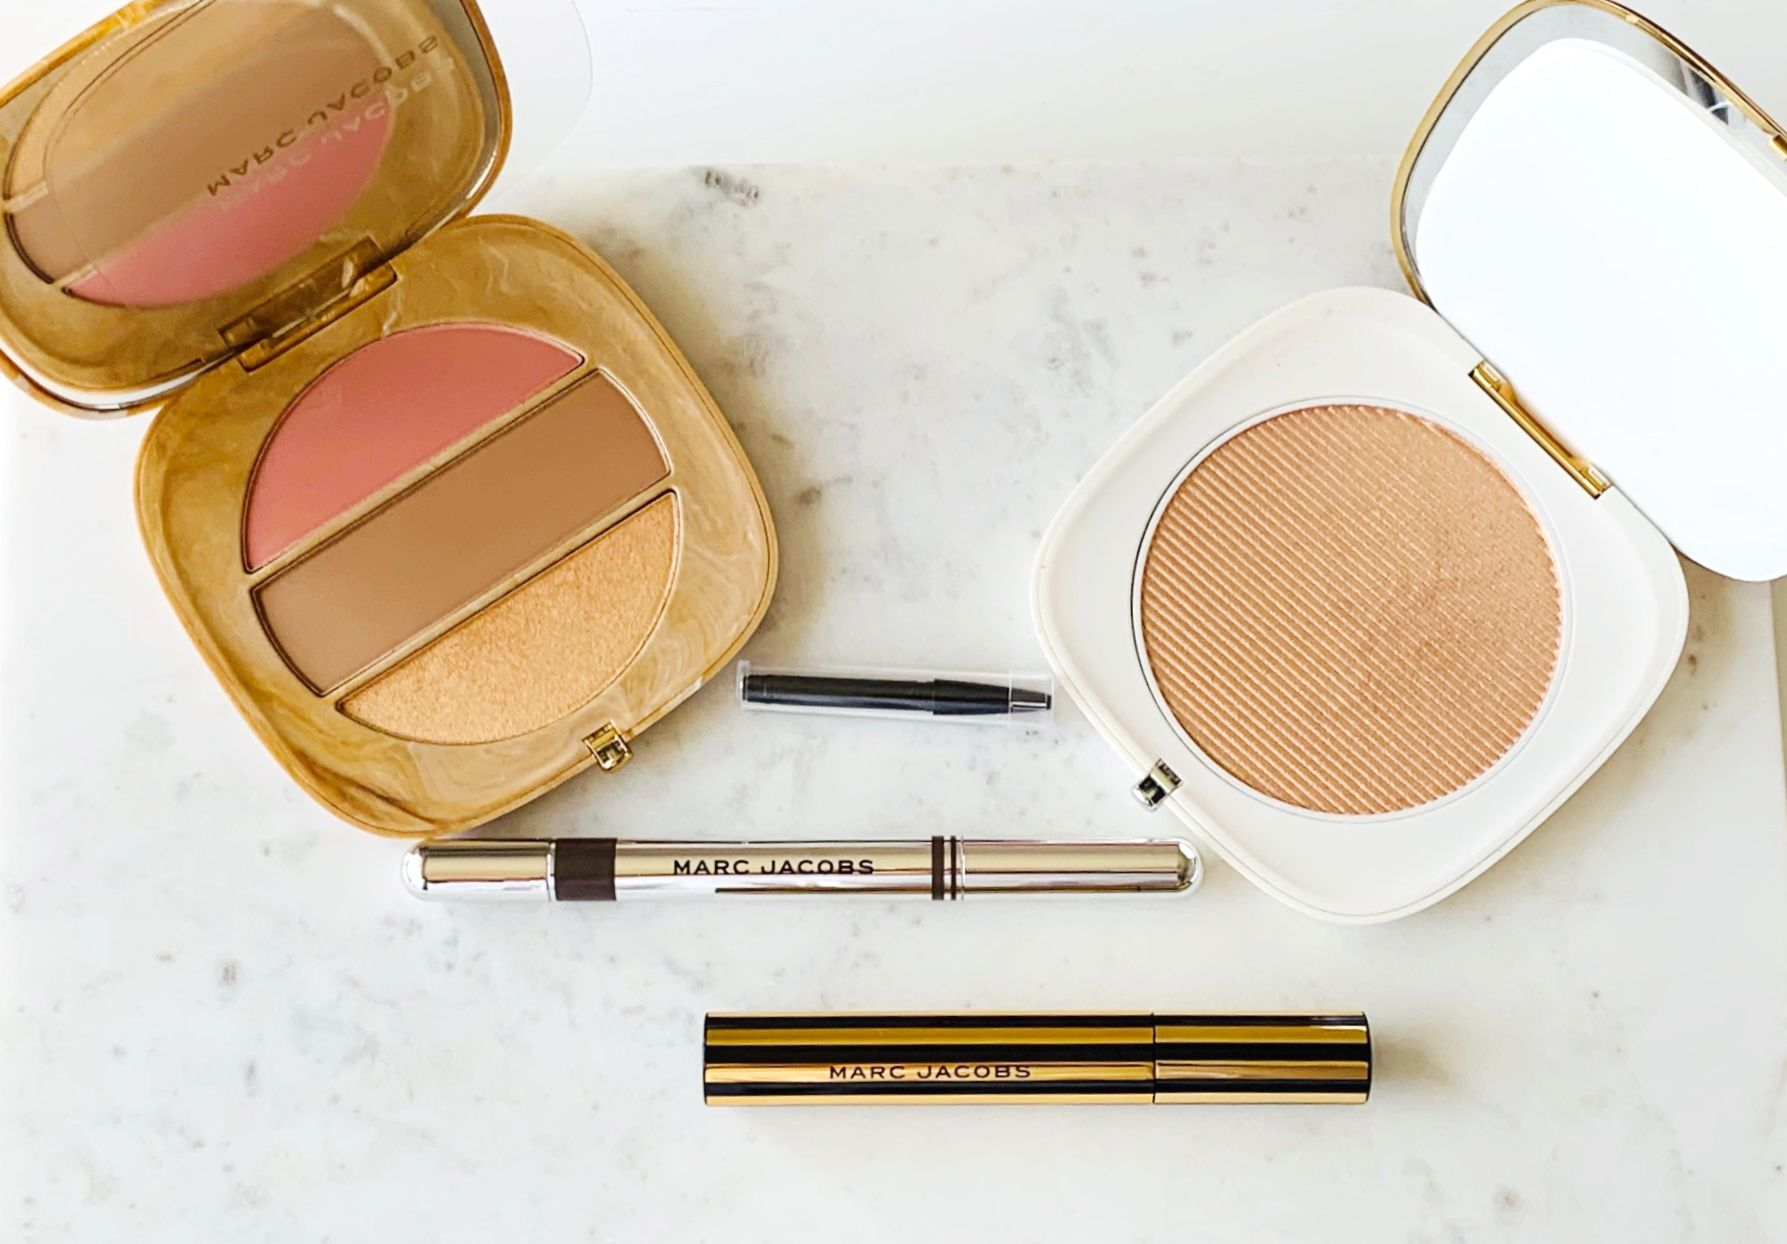 Marc Jacobs O!Mega X Three Powder Blush-Bronze-Highlight Palette Review, Marc Jacobs Brow Wow Duo Review, Marc Jacobs At Lash'd Lengthening and Curling Mascara Review